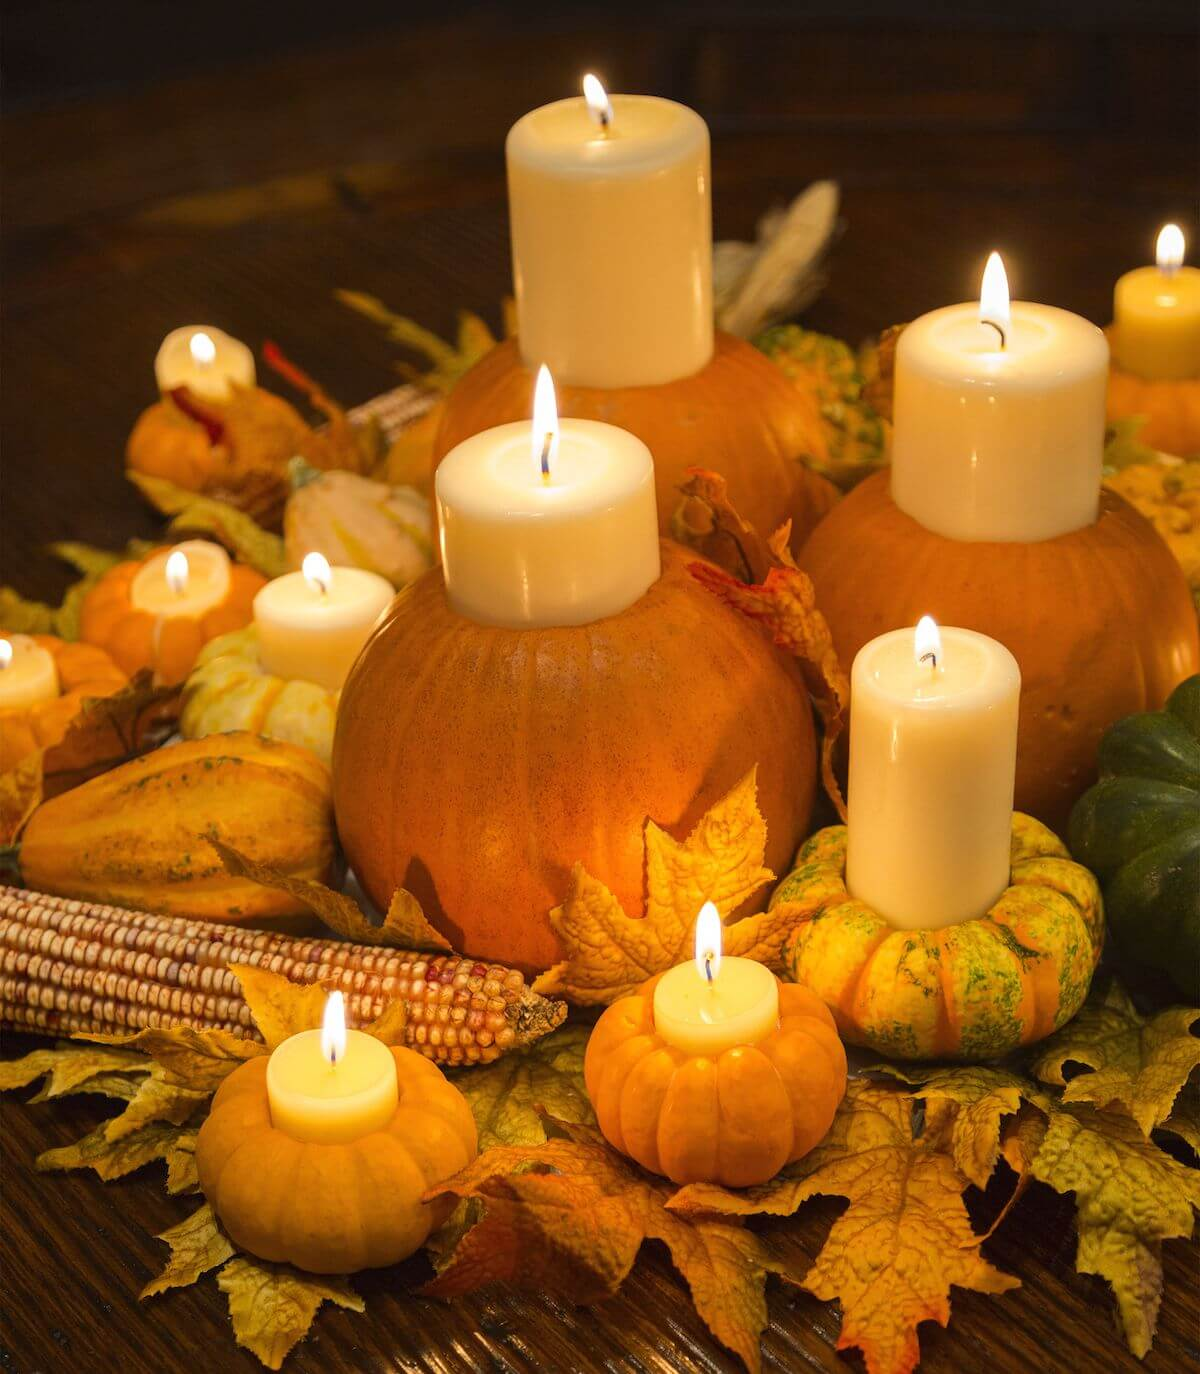 Pumpkins filled with candles on a bed of leaves.